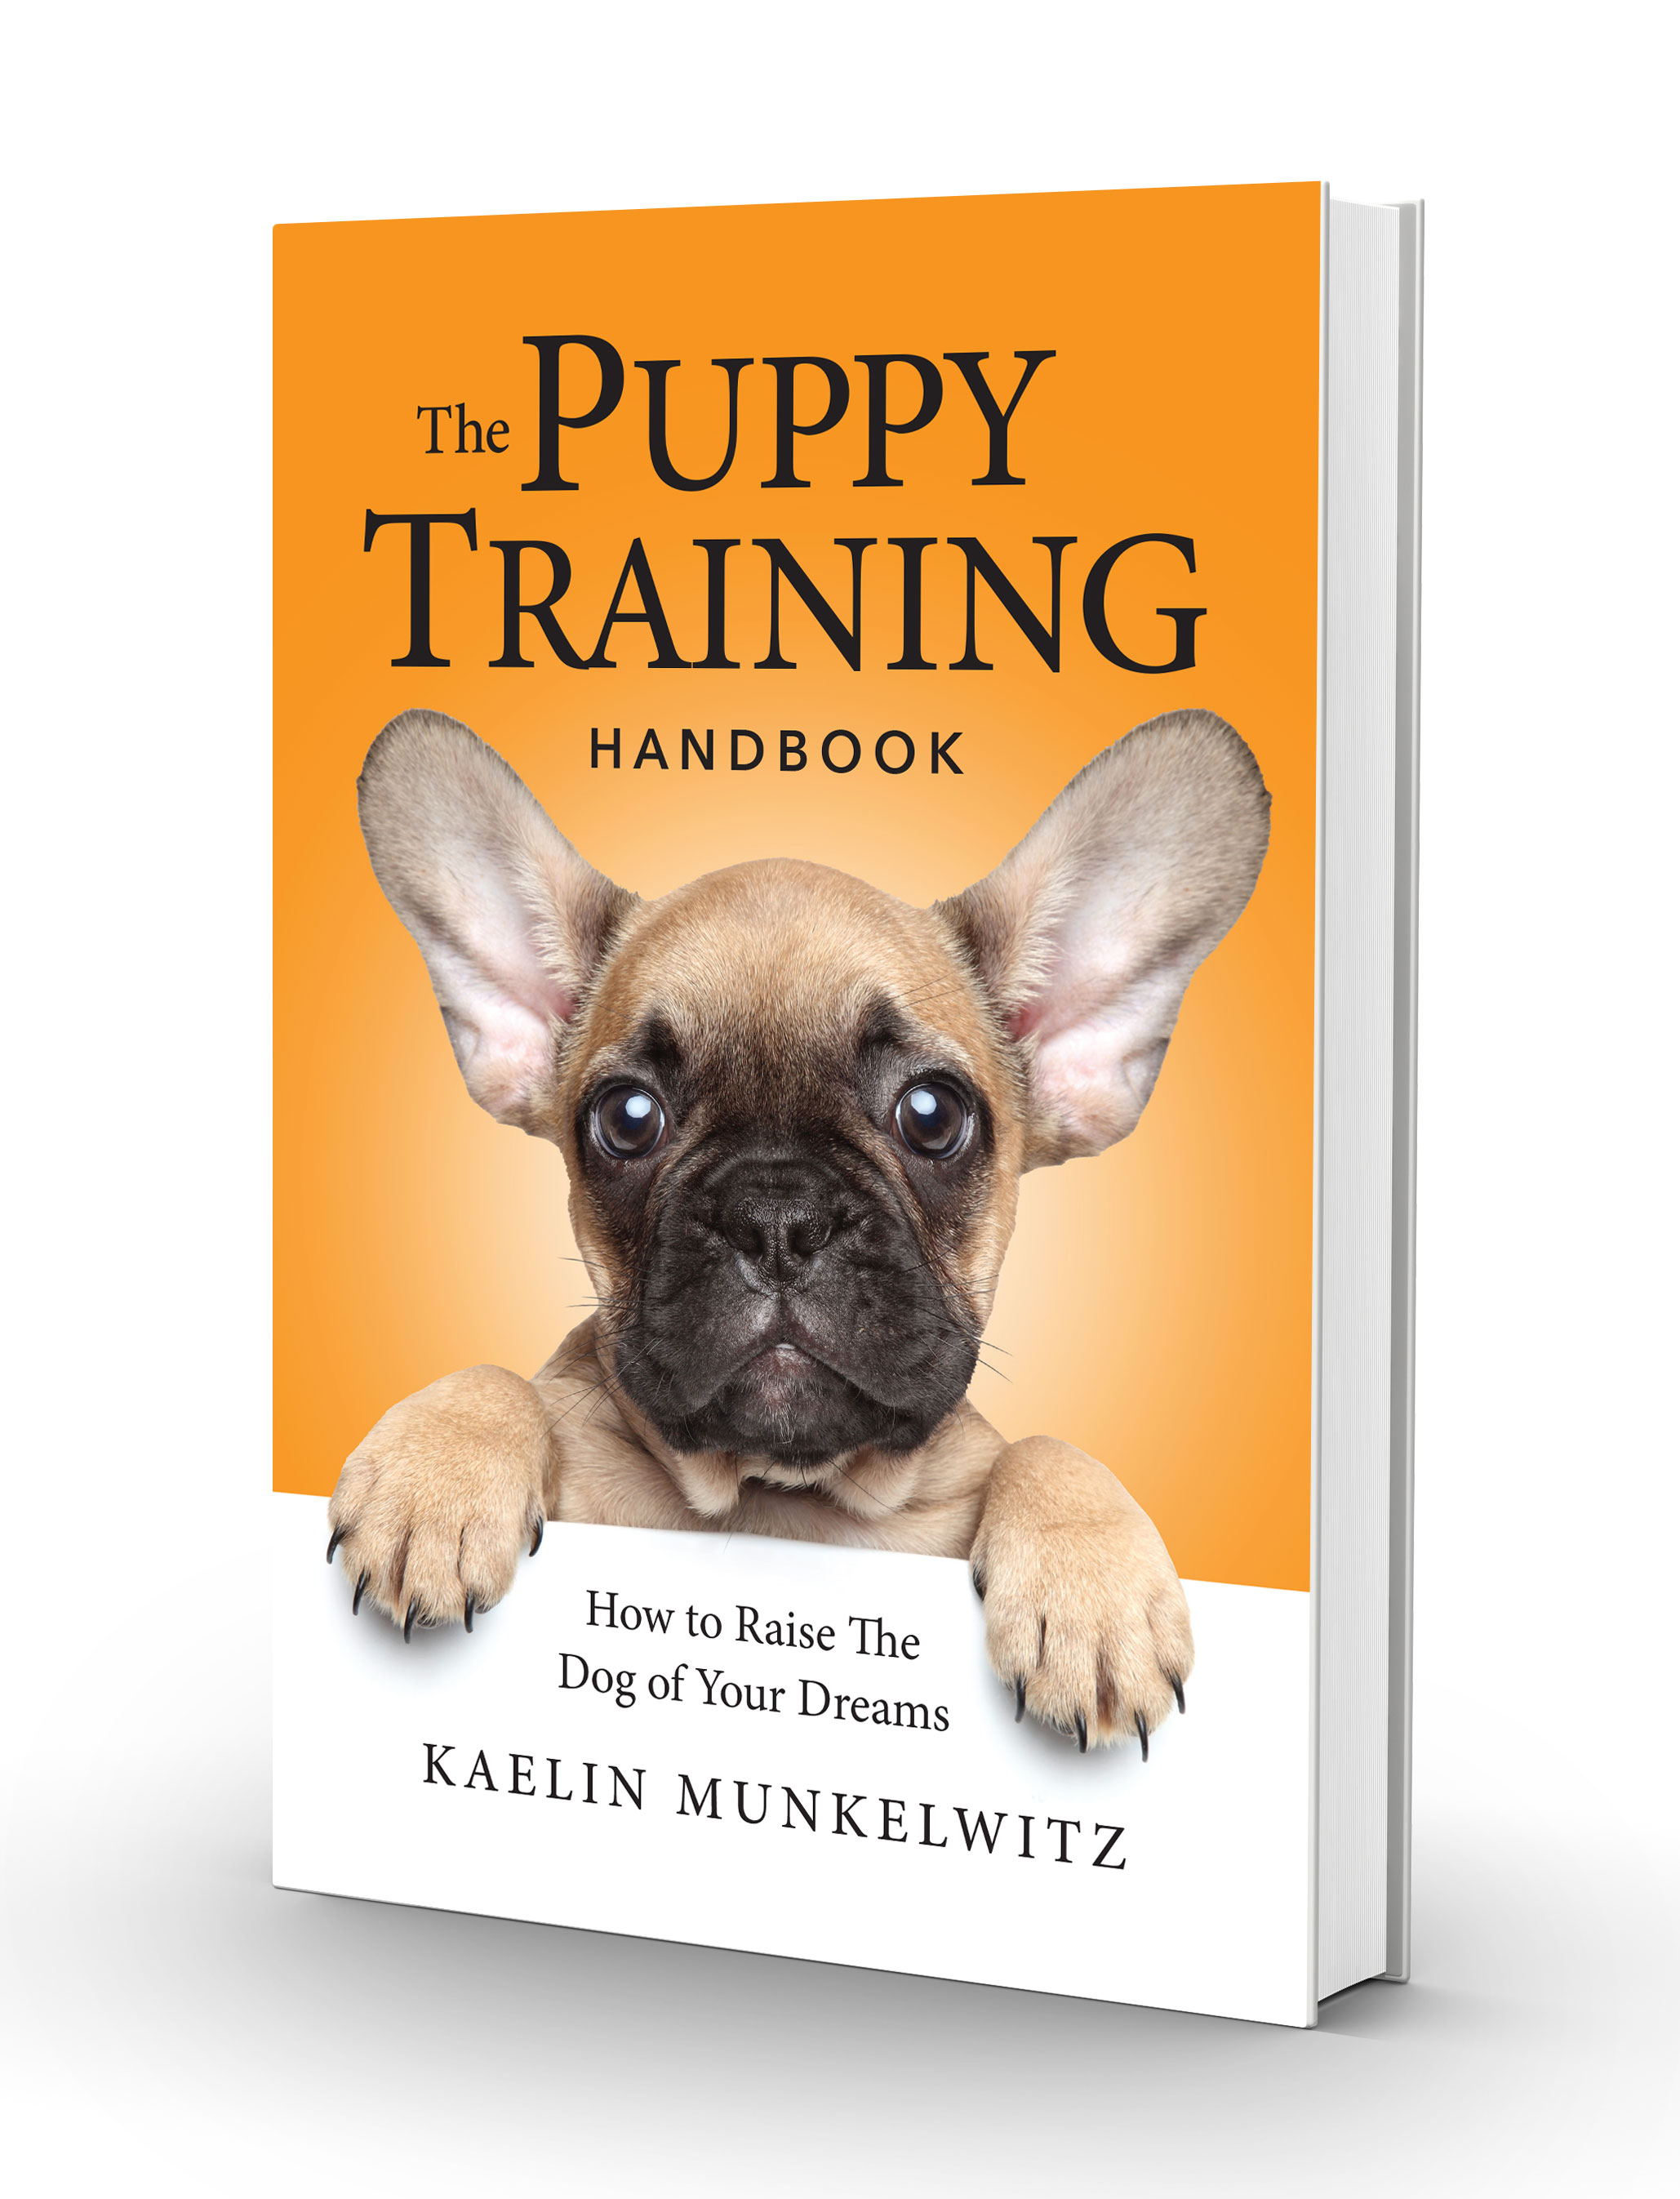 The Puppy Training Handbook - All Things Pups